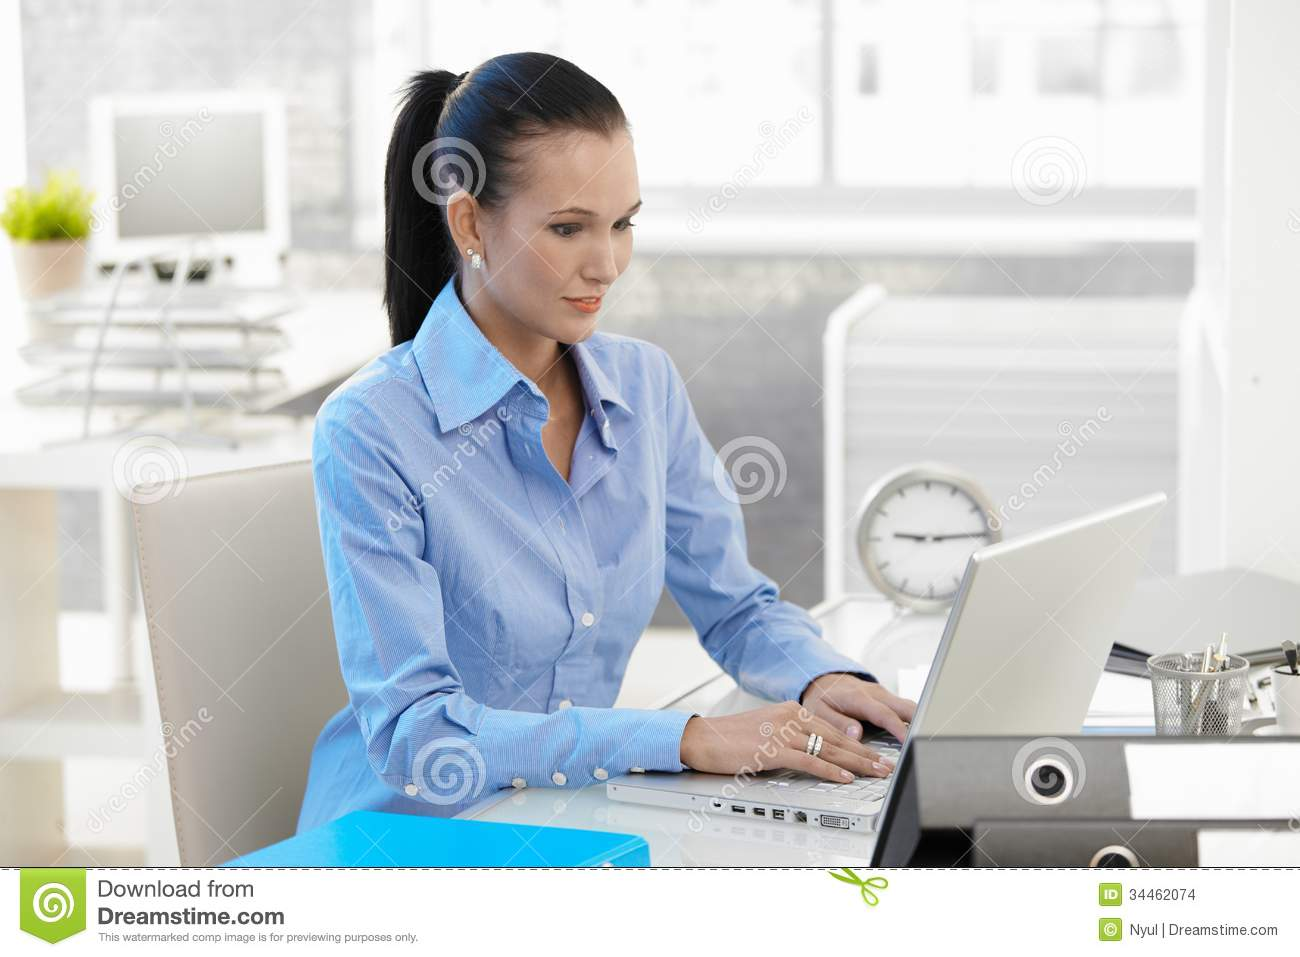 Office girl working on laptop computer at desk, looking at monitor